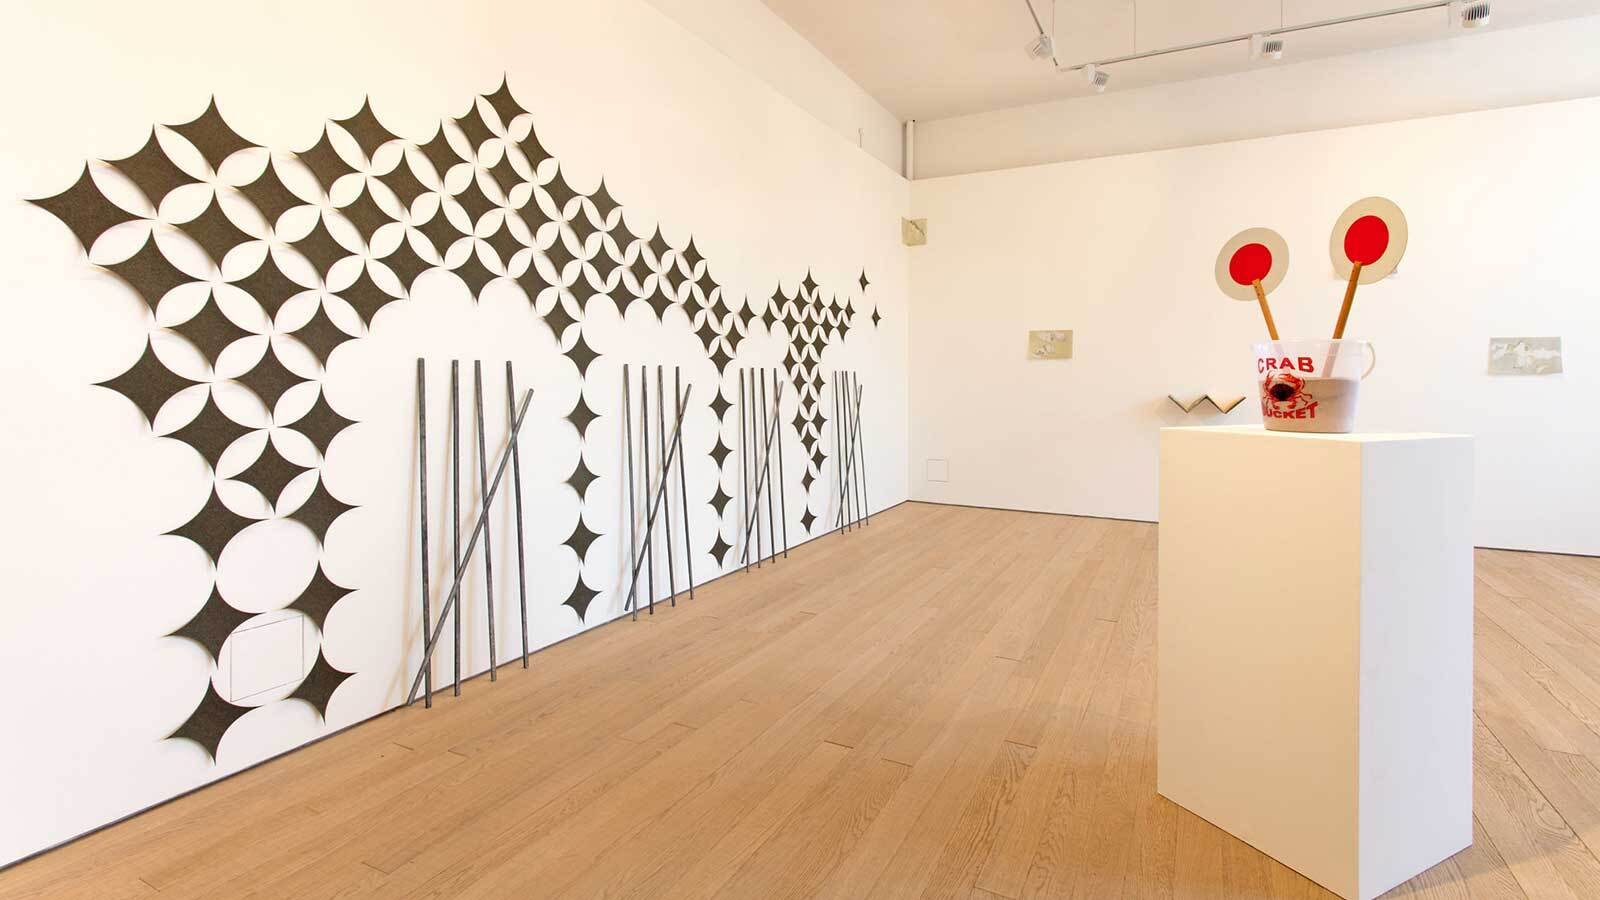 Photograph of Nicky Hirst exhibition at Exeter Phoenix